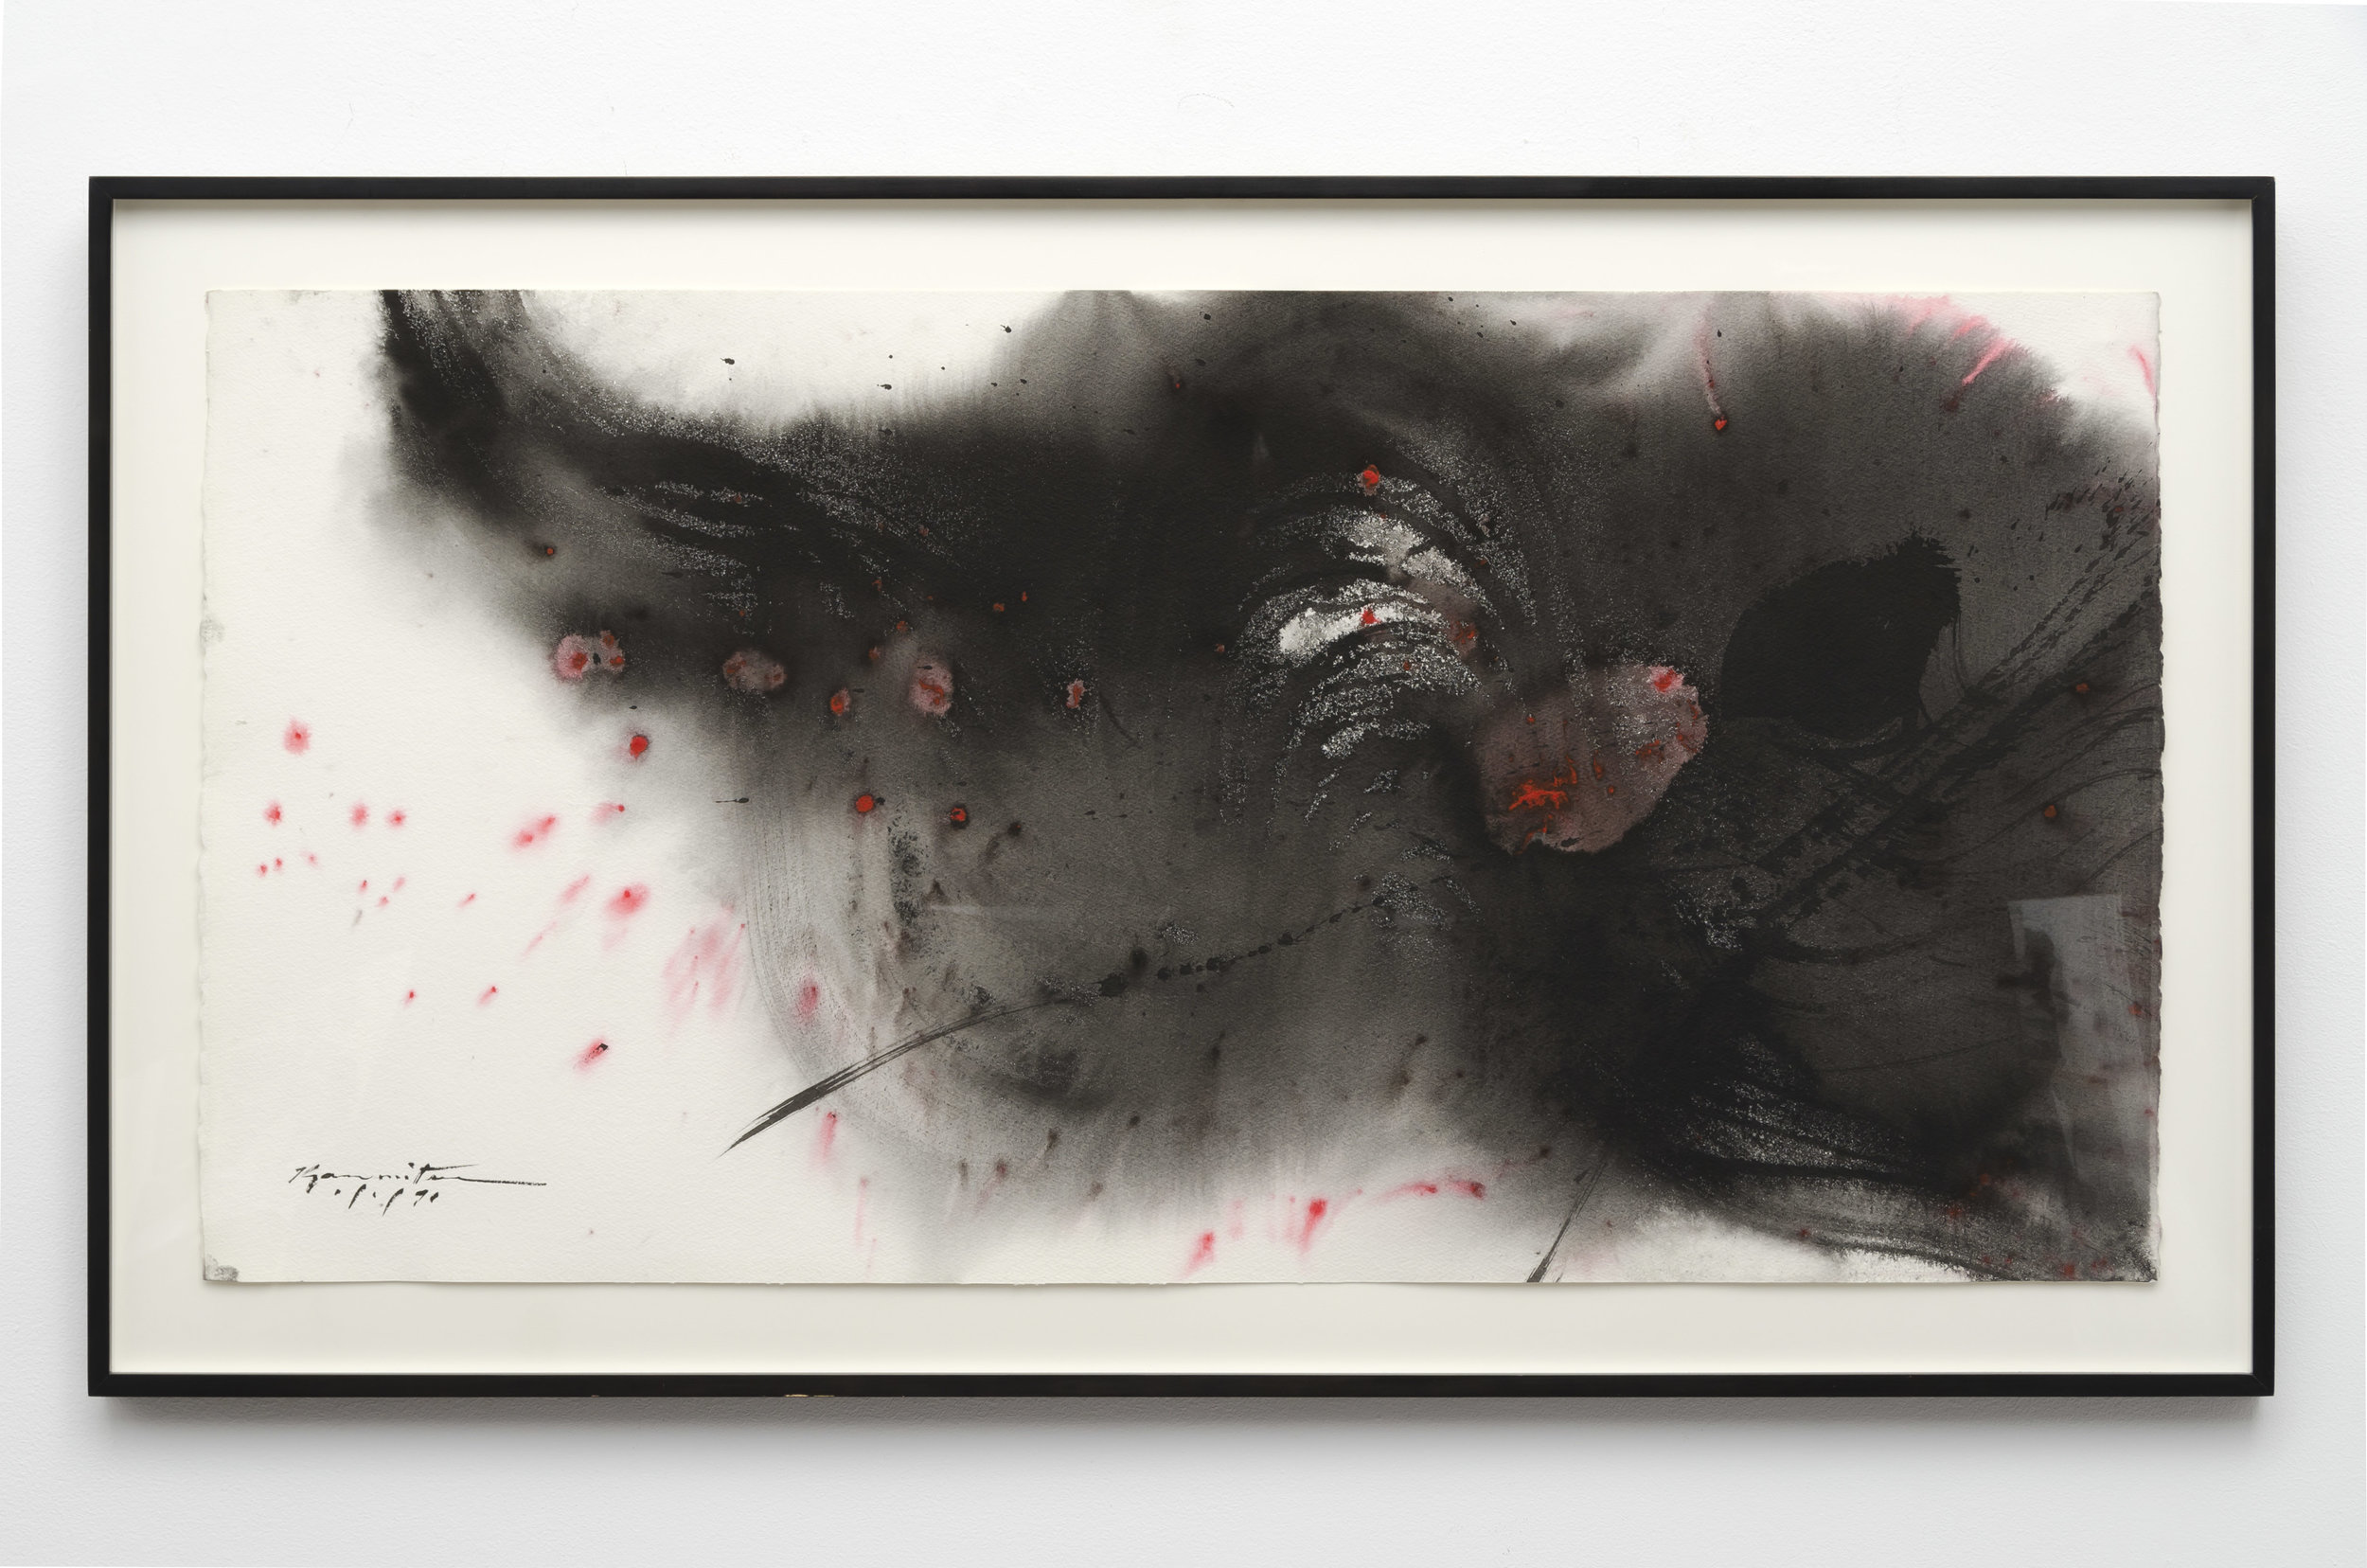 1-91 , 1991 sumi on paper 25 3/8 x 45 inches; 64.5 x 114.3 centimeters